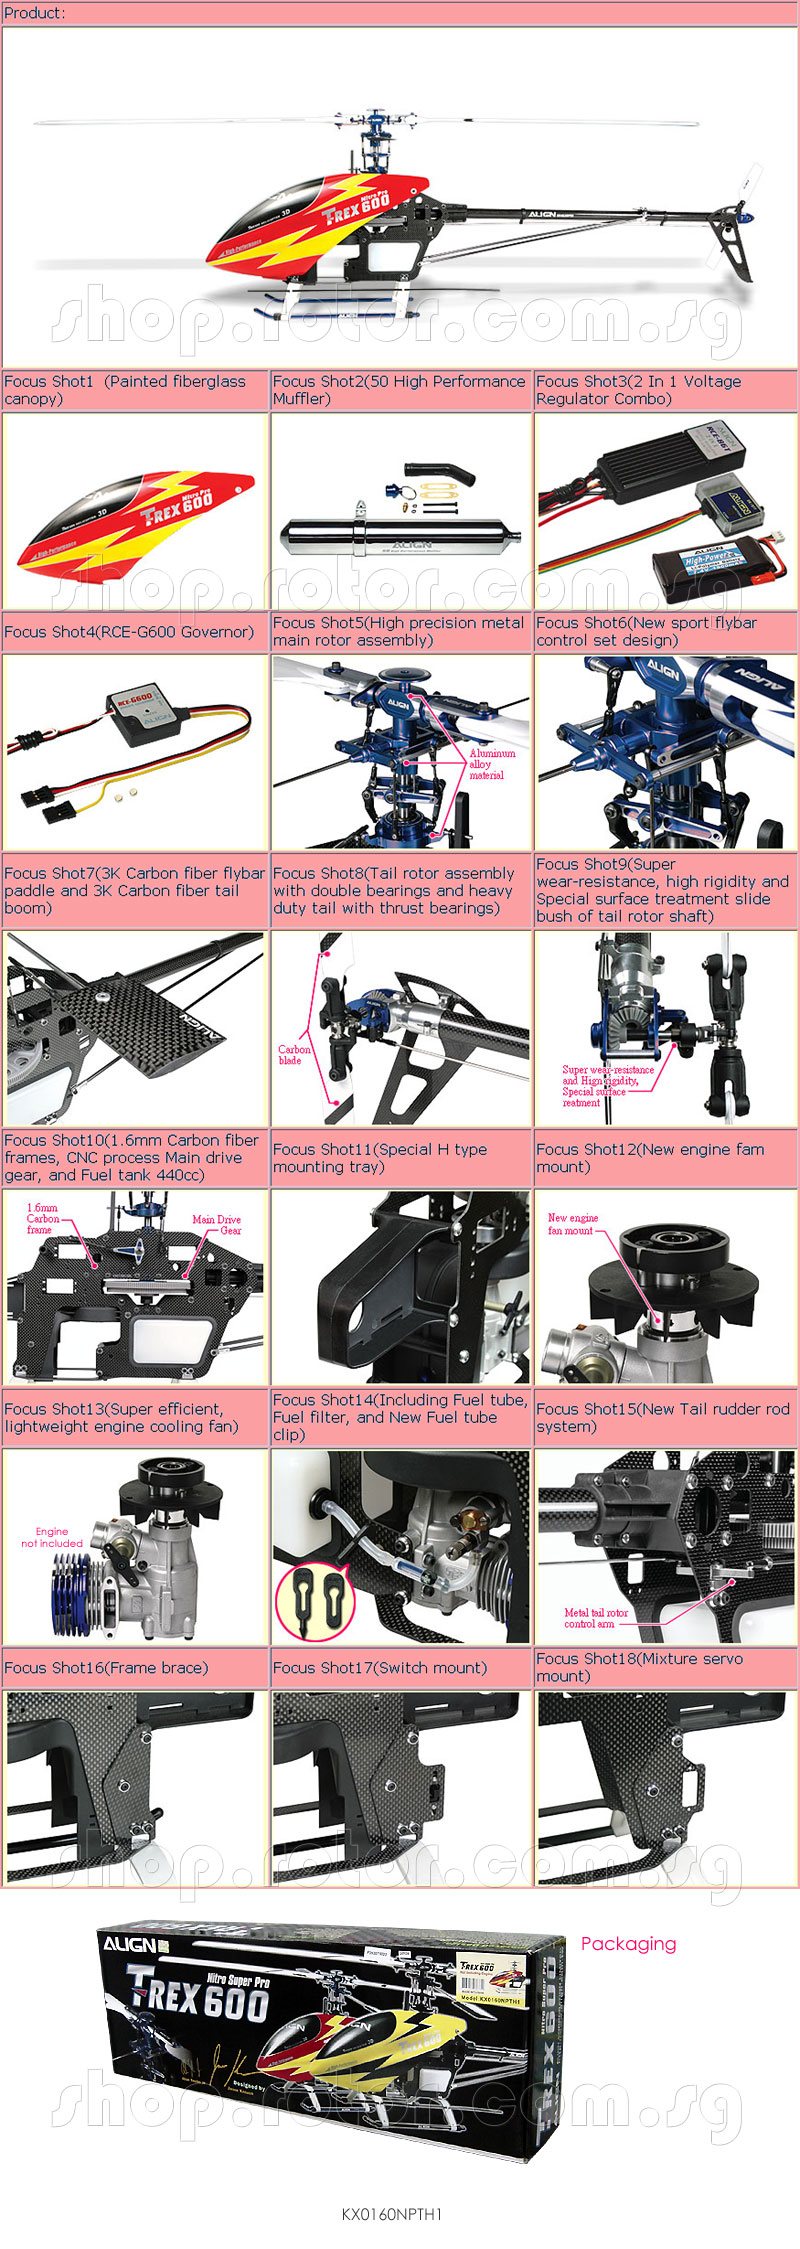 Rotor Hobby Enterprises Pte Ltd Page.